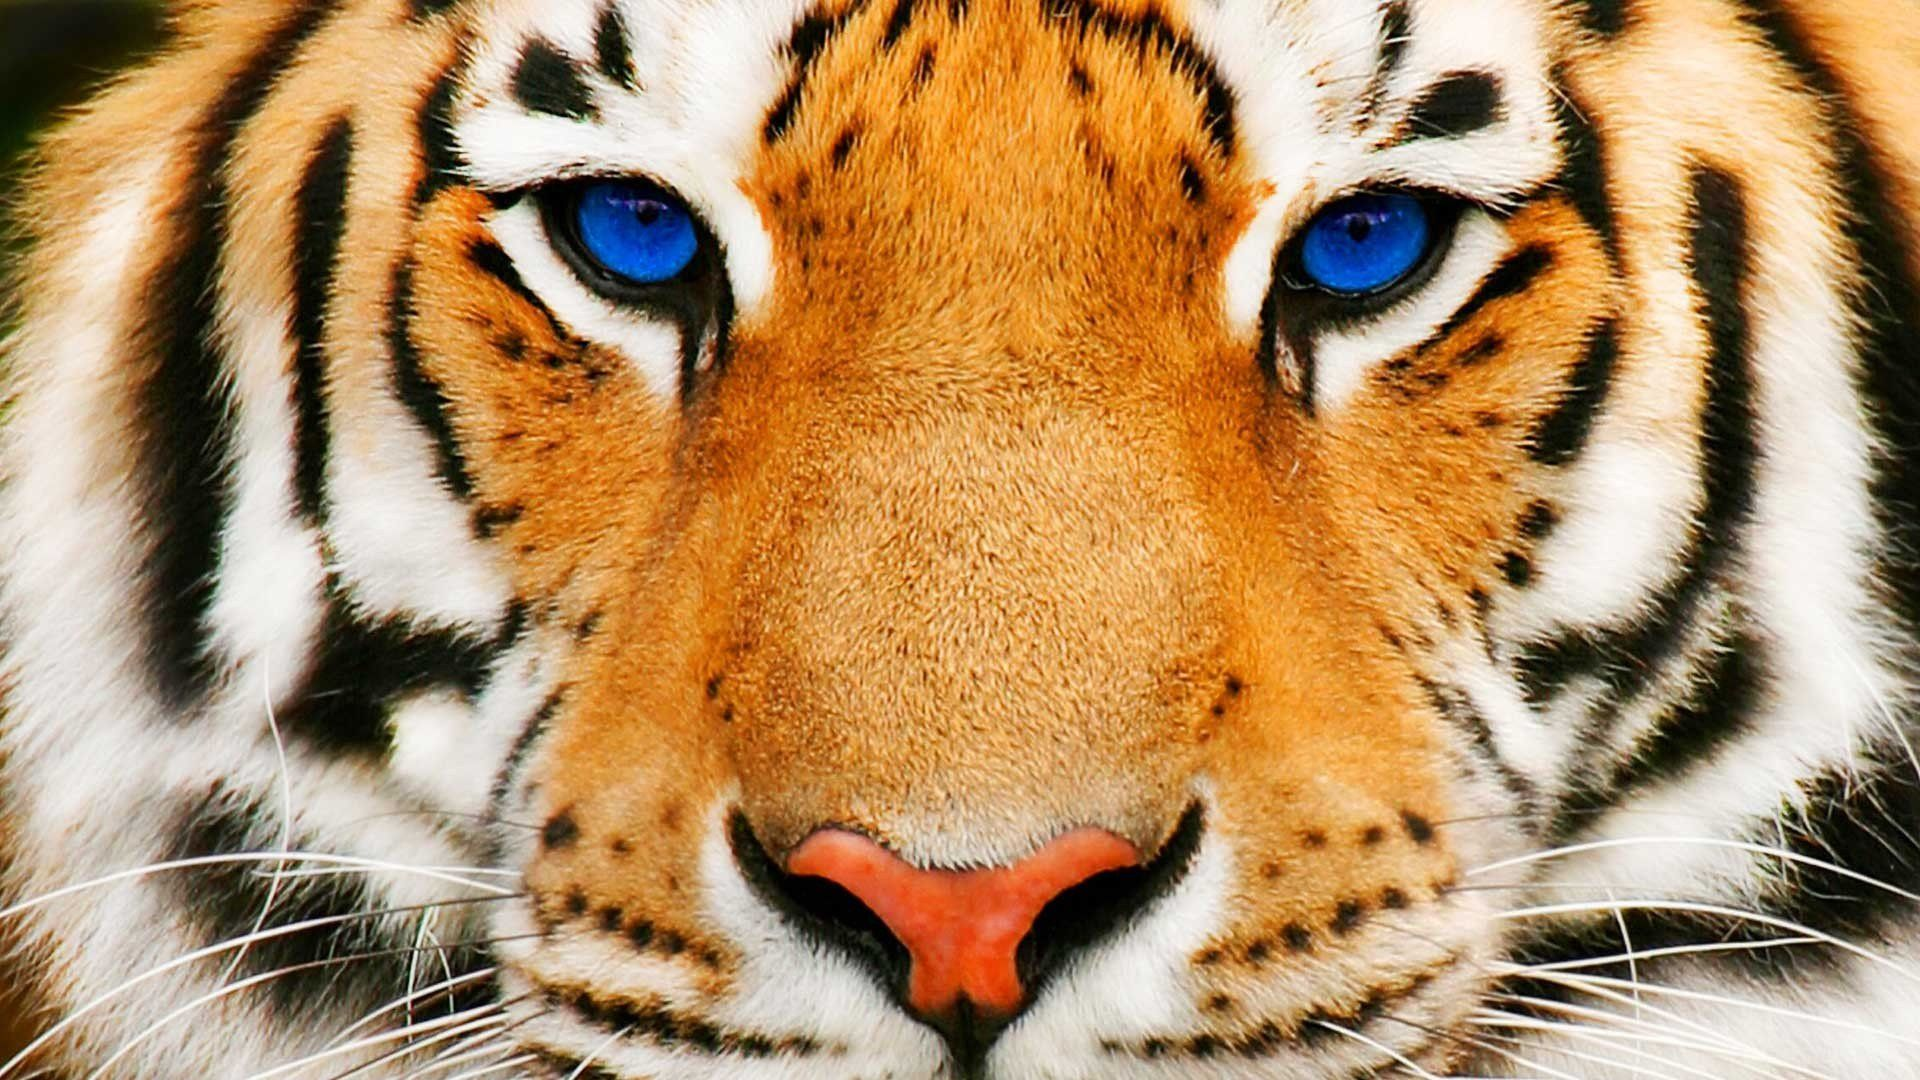 tiger face hd wallpapers Desktop Backgrounds for Free HD